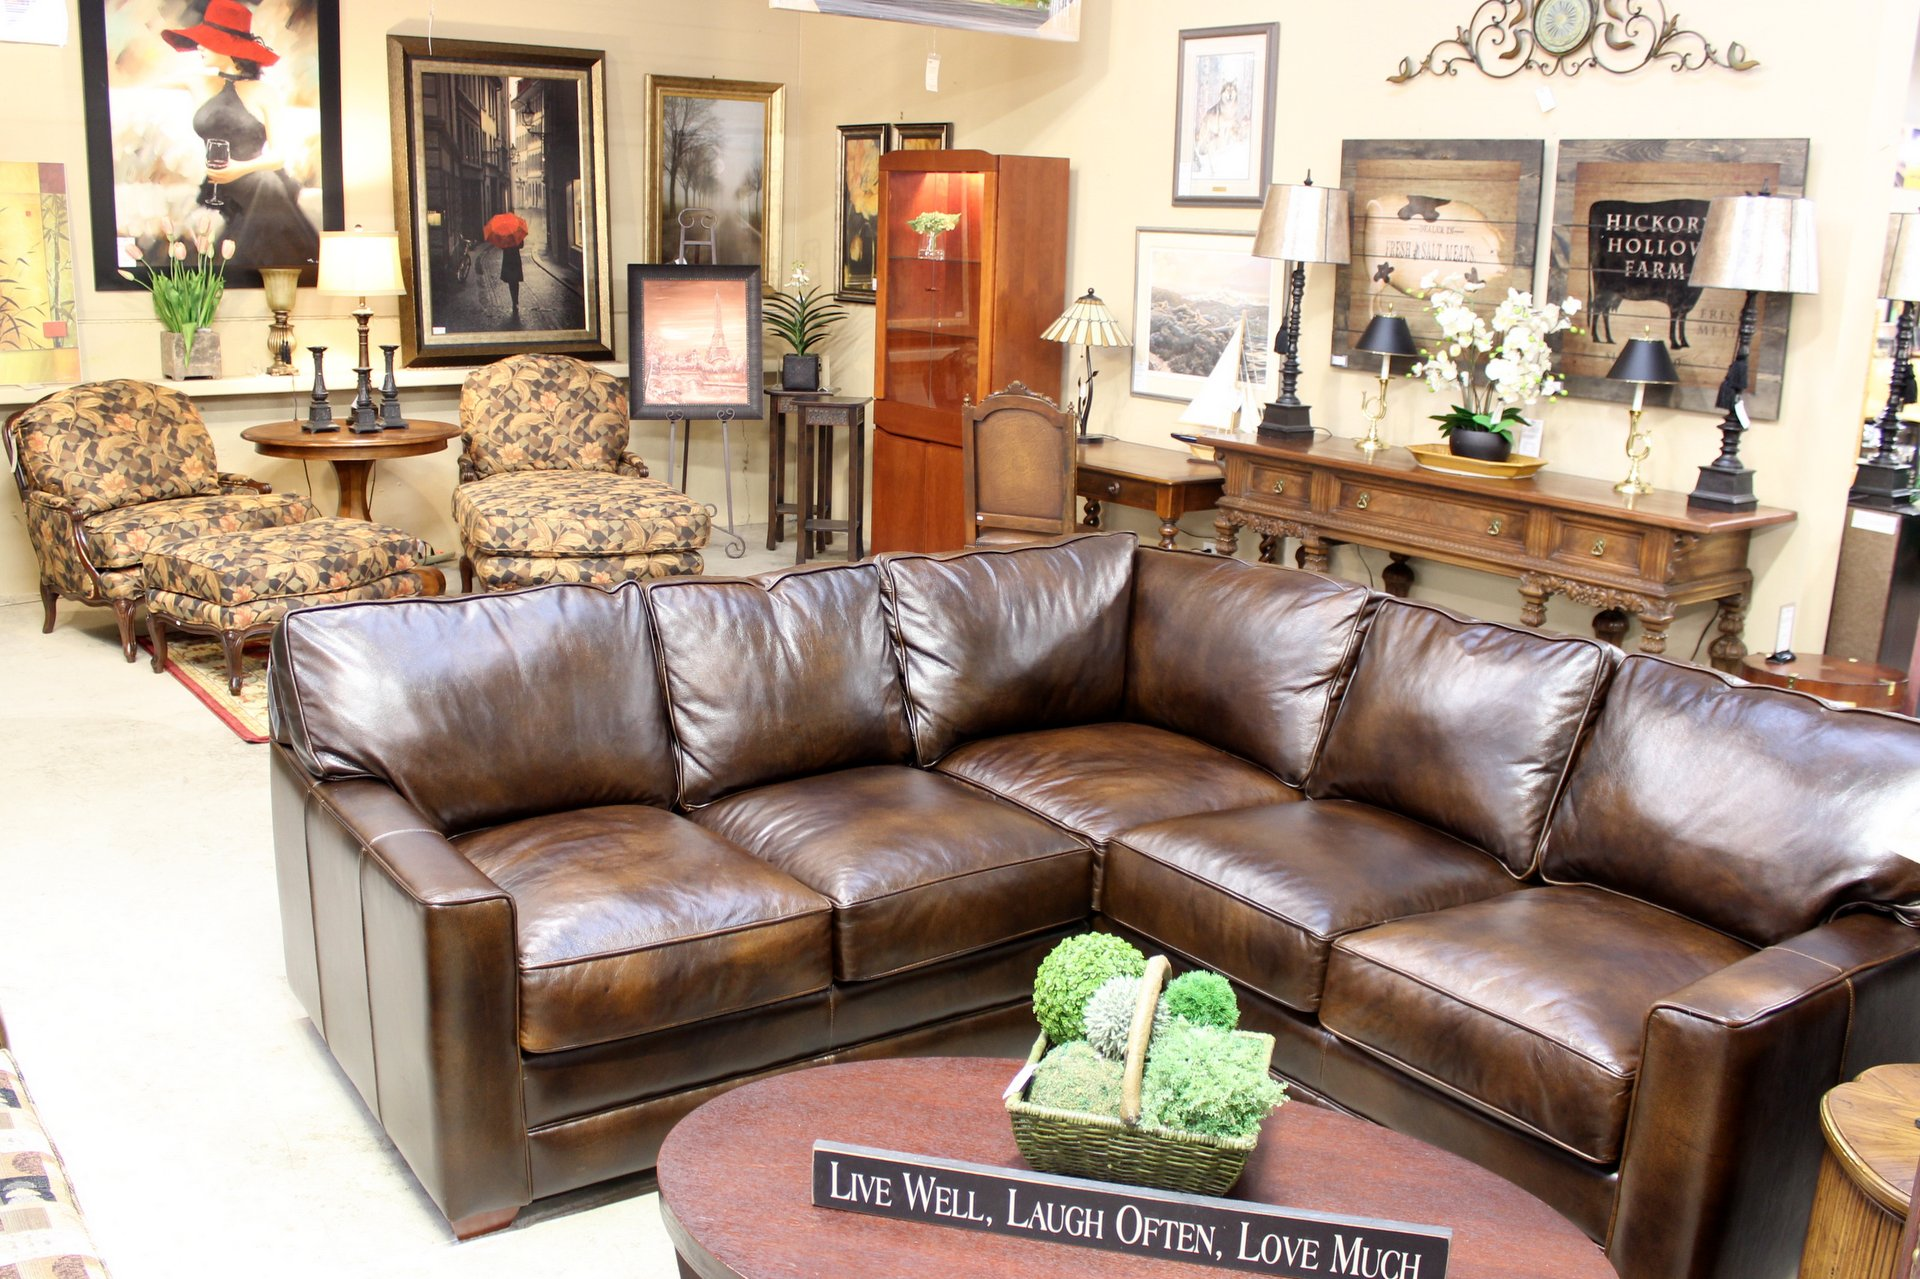 Upscale Consignment   Upscale Used Furniture   Decor Save 40 80  on Quality Like New Furnishings